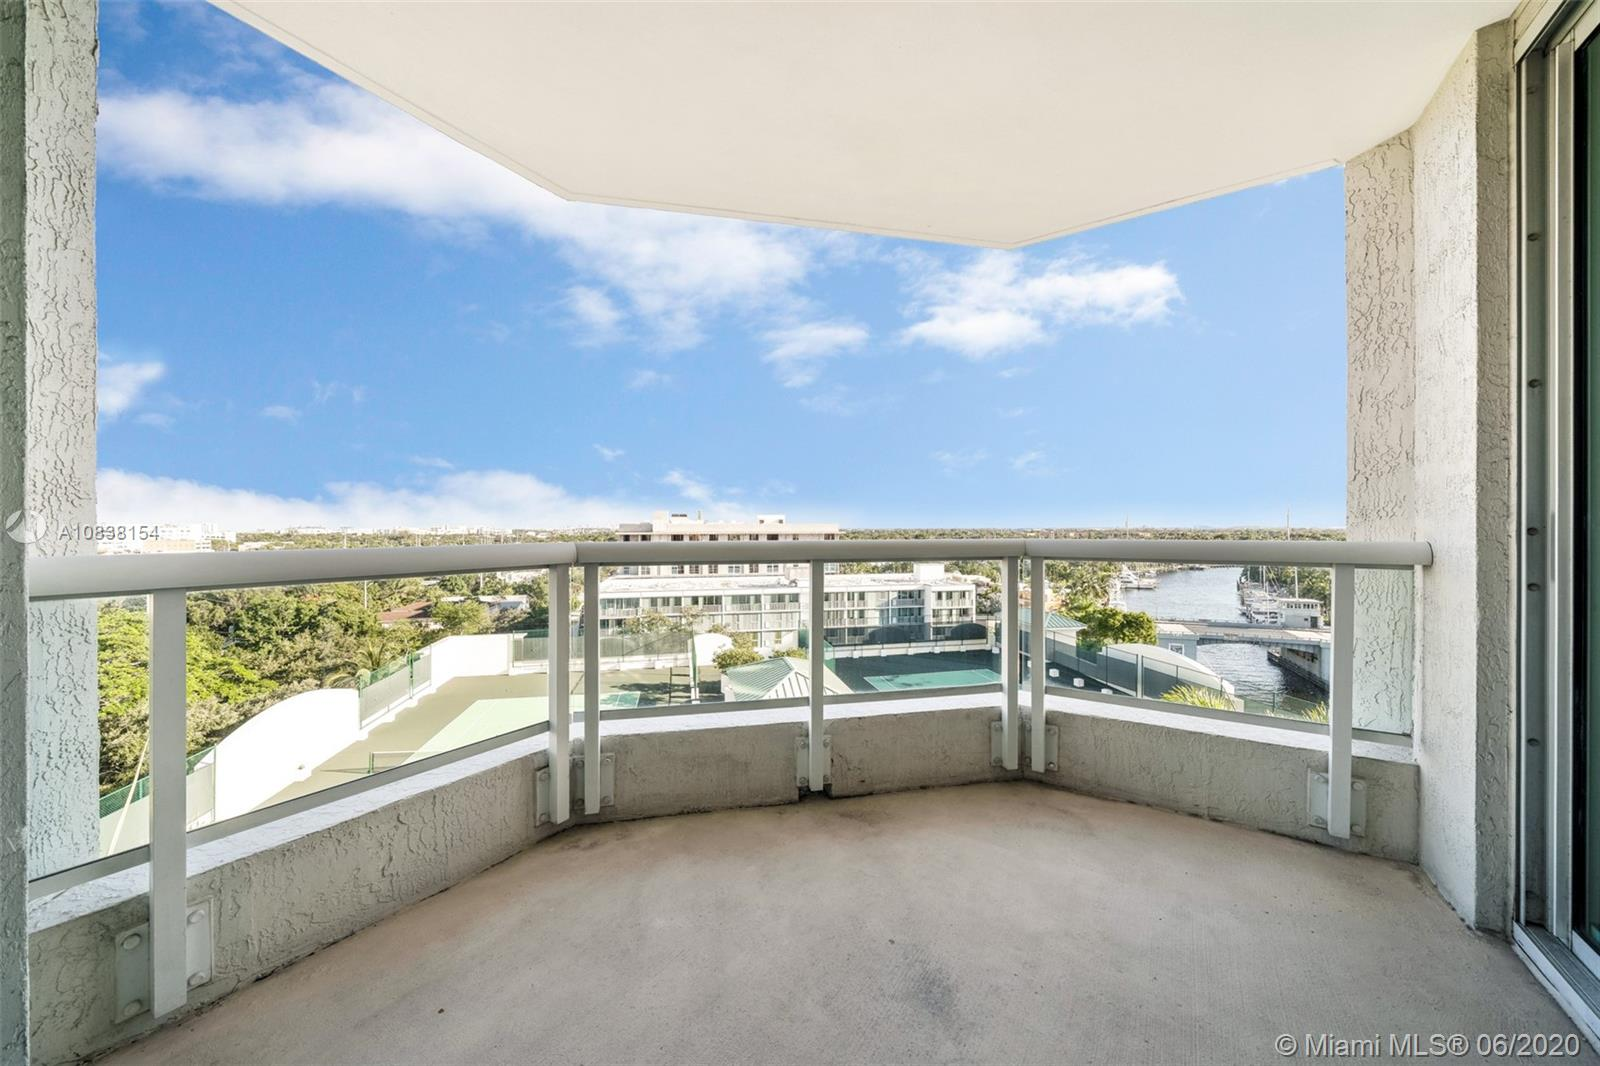 Amazing unit at the Esplanade in Fort Lauderdale. Waterviews from this amazing condo building with lots of amenities and near the beach, Las Olas blvd, shops, restaurants and more. 10th floor unit with balcony, won't last!